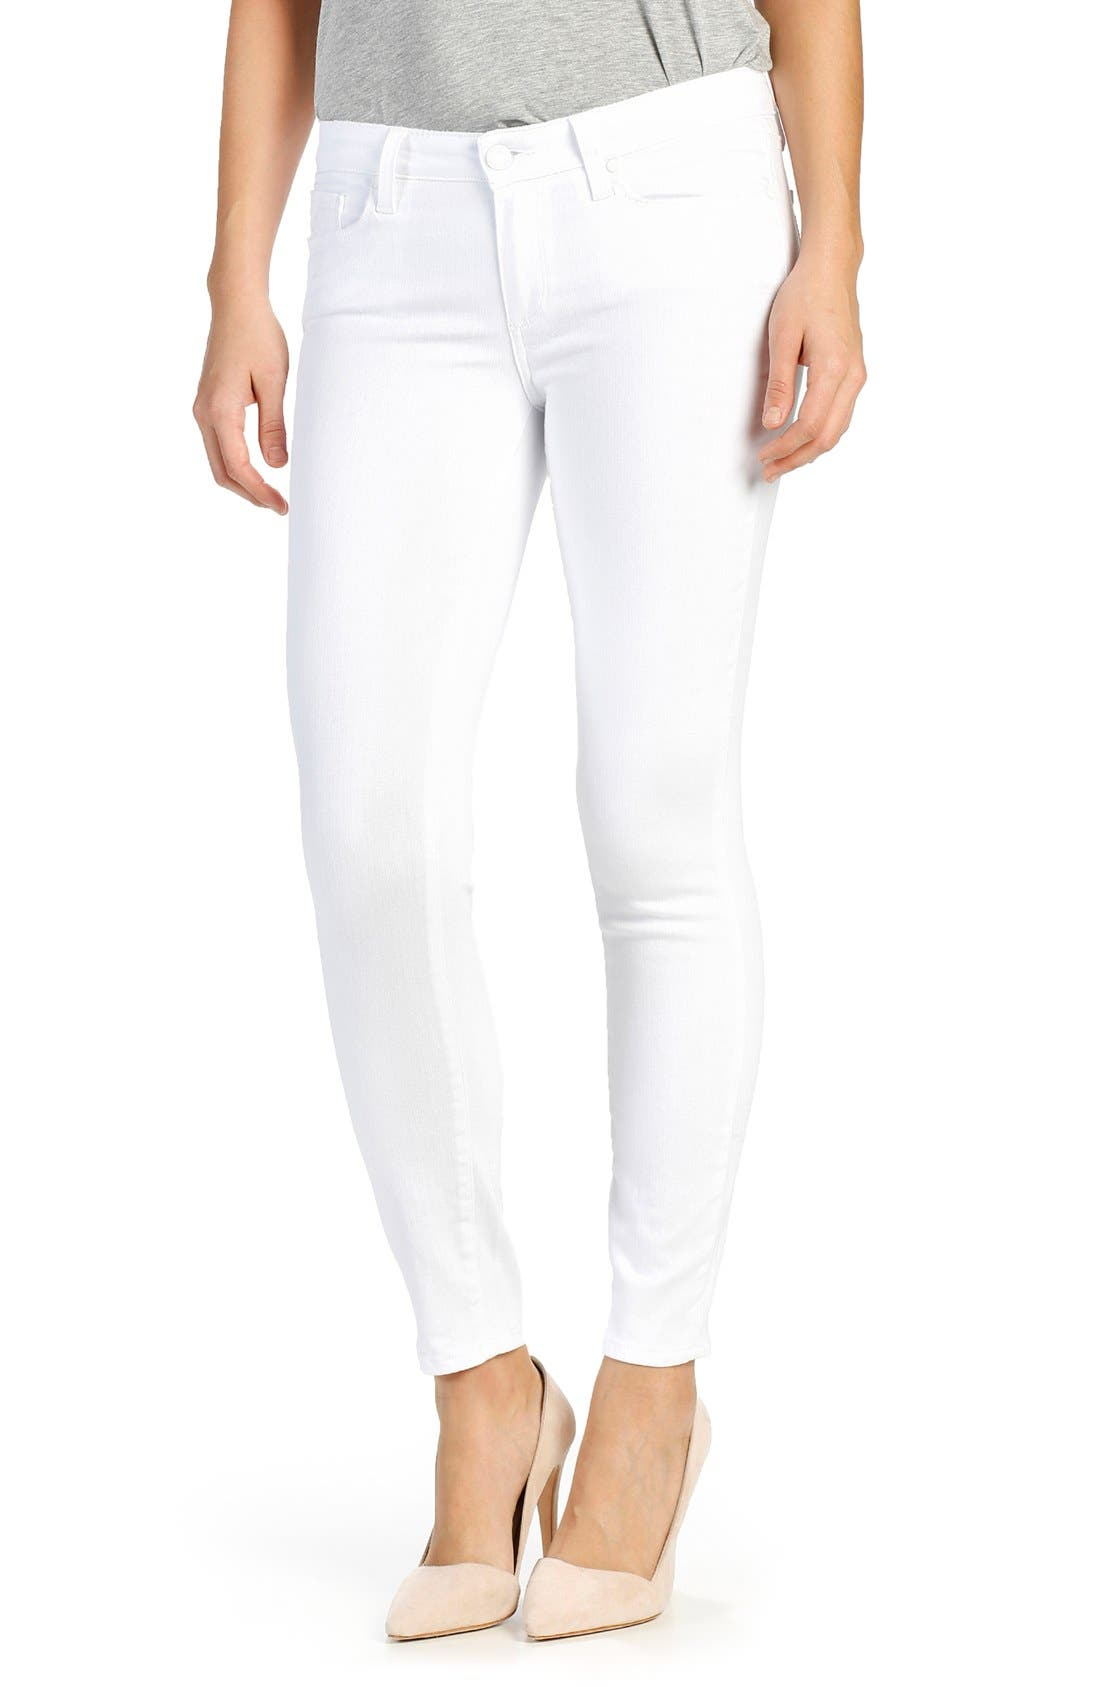 PAIGE Verdugo Ankle Skinny Jeans, Main, color, 100